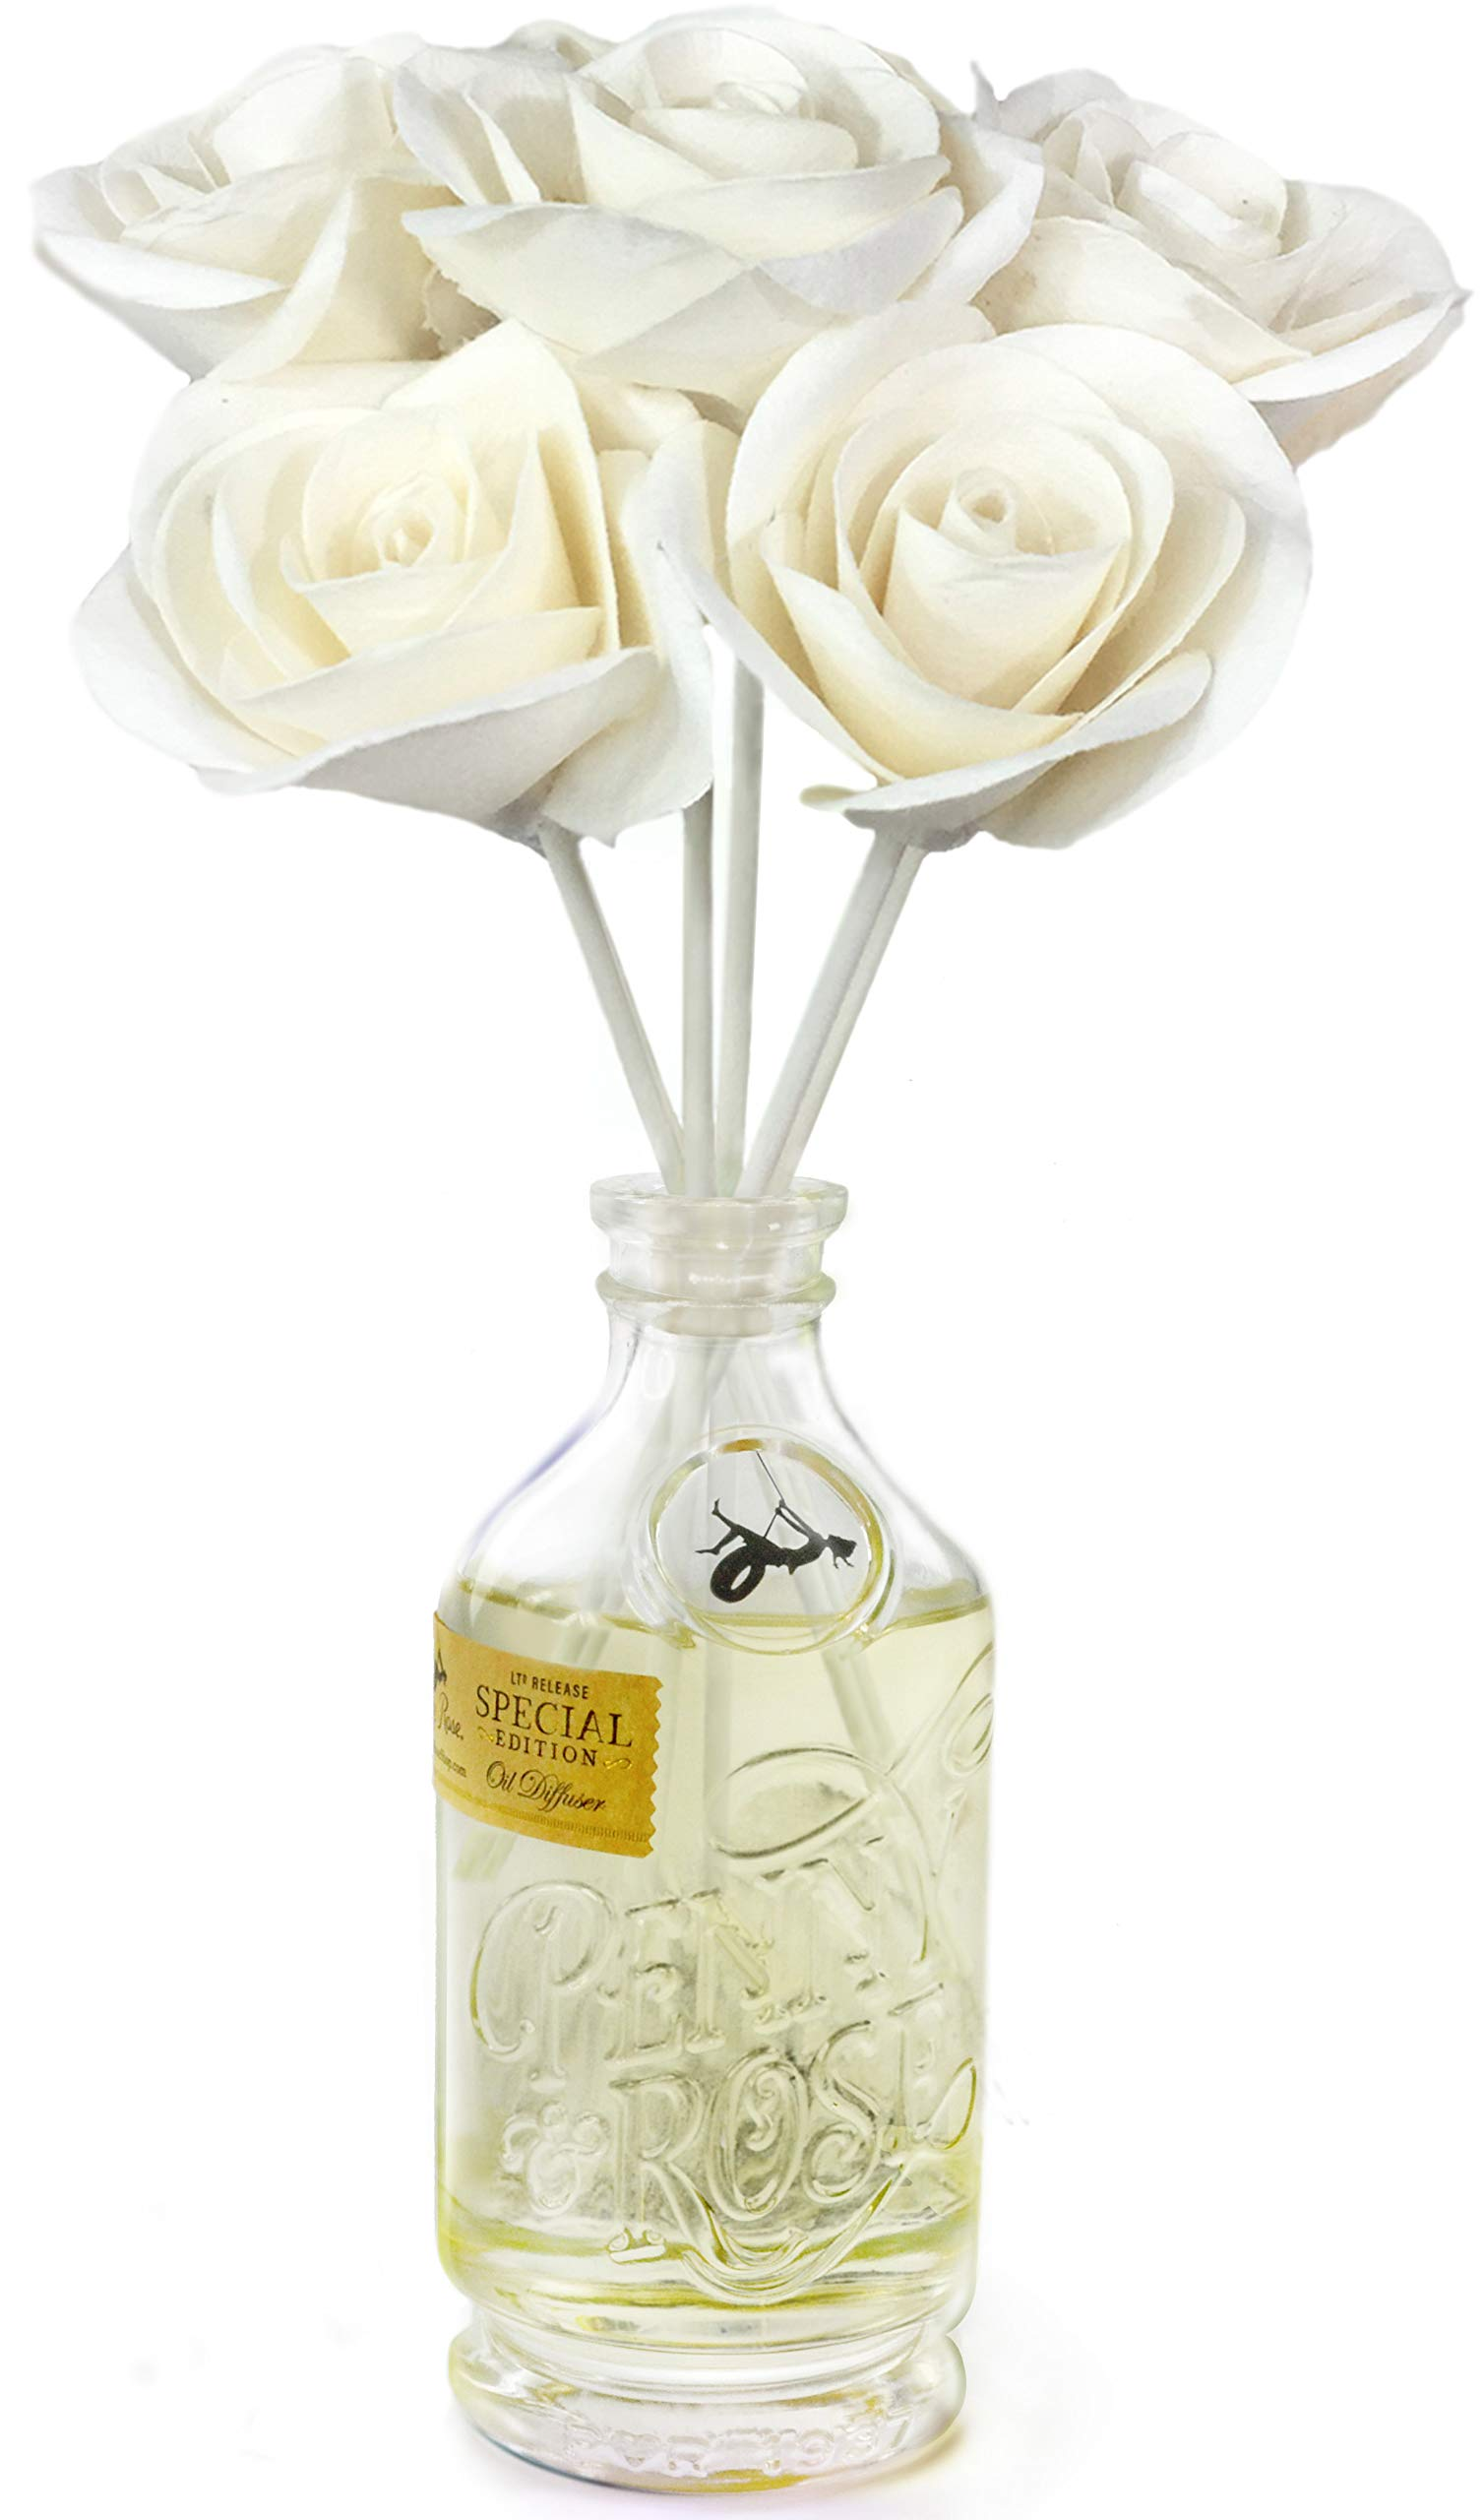 Penny & Rose White Rose Floral Diffuser | Summertime Spirits Oil Scent by PENNY AND ROSE (Image #2)